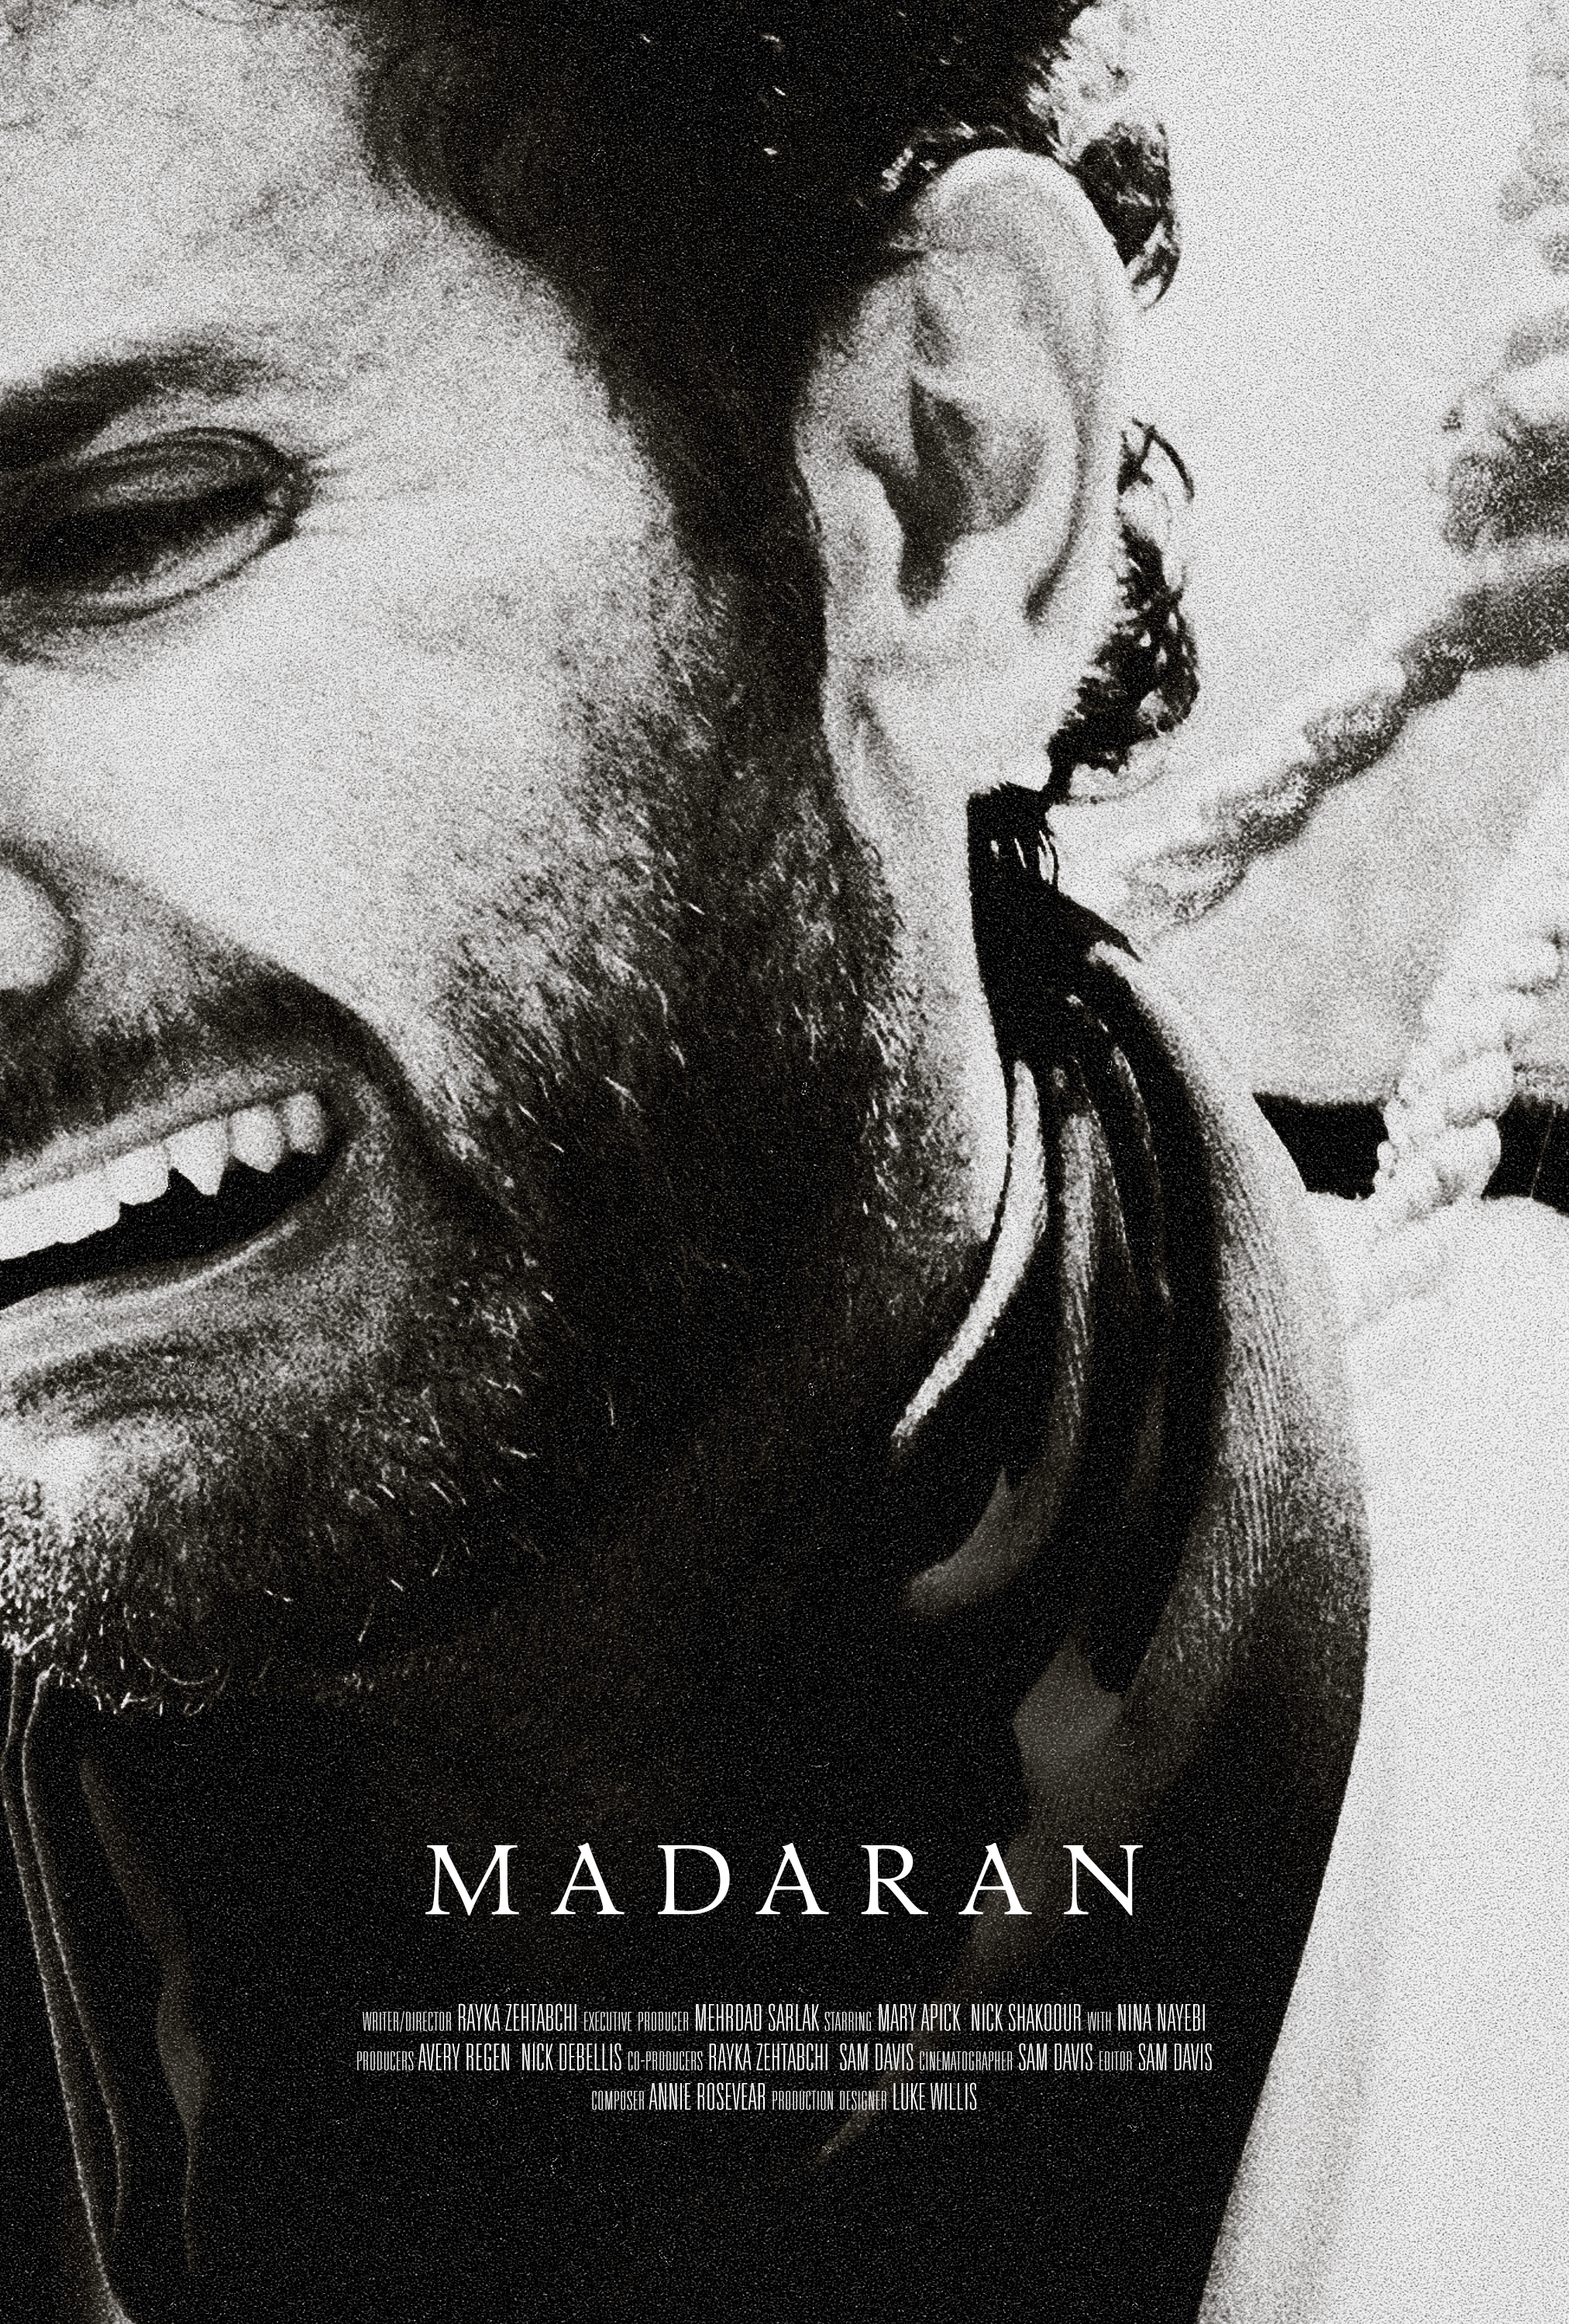 MADARAN_OfficialPoster.jpg